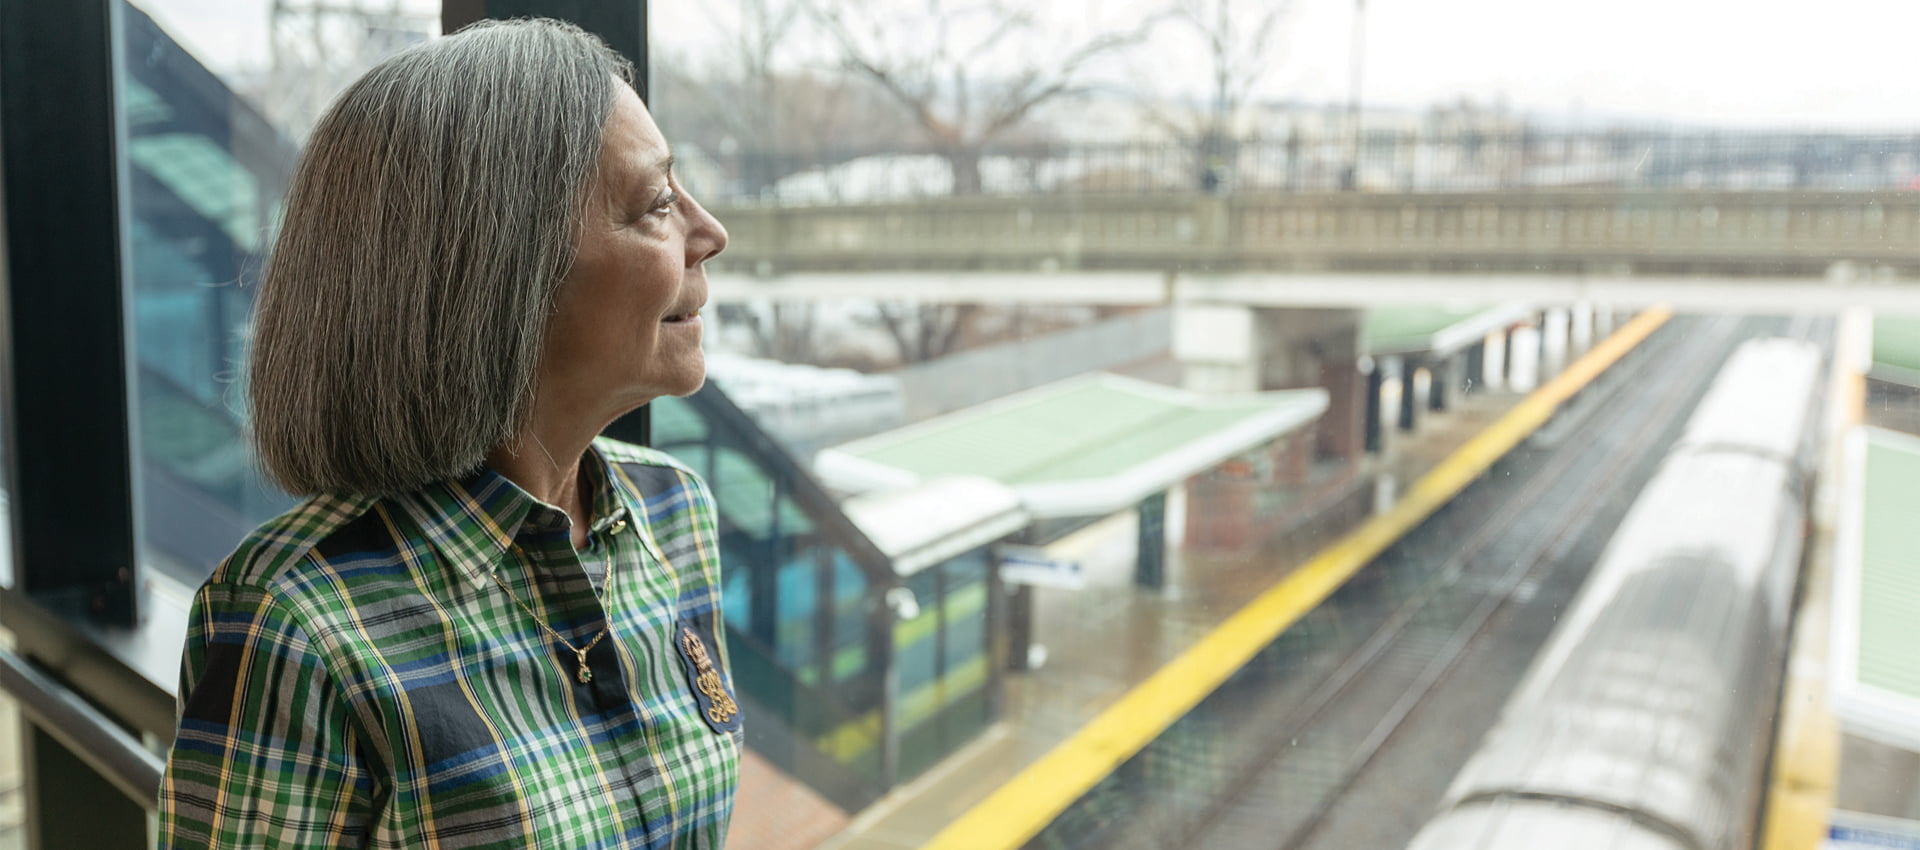 Sandy Nardoci looks out at the Amtrak yard at the Albany-Rensselaer station. Hope in Healing | Voices of Hope | Photo Courtesy of Filmworks 109